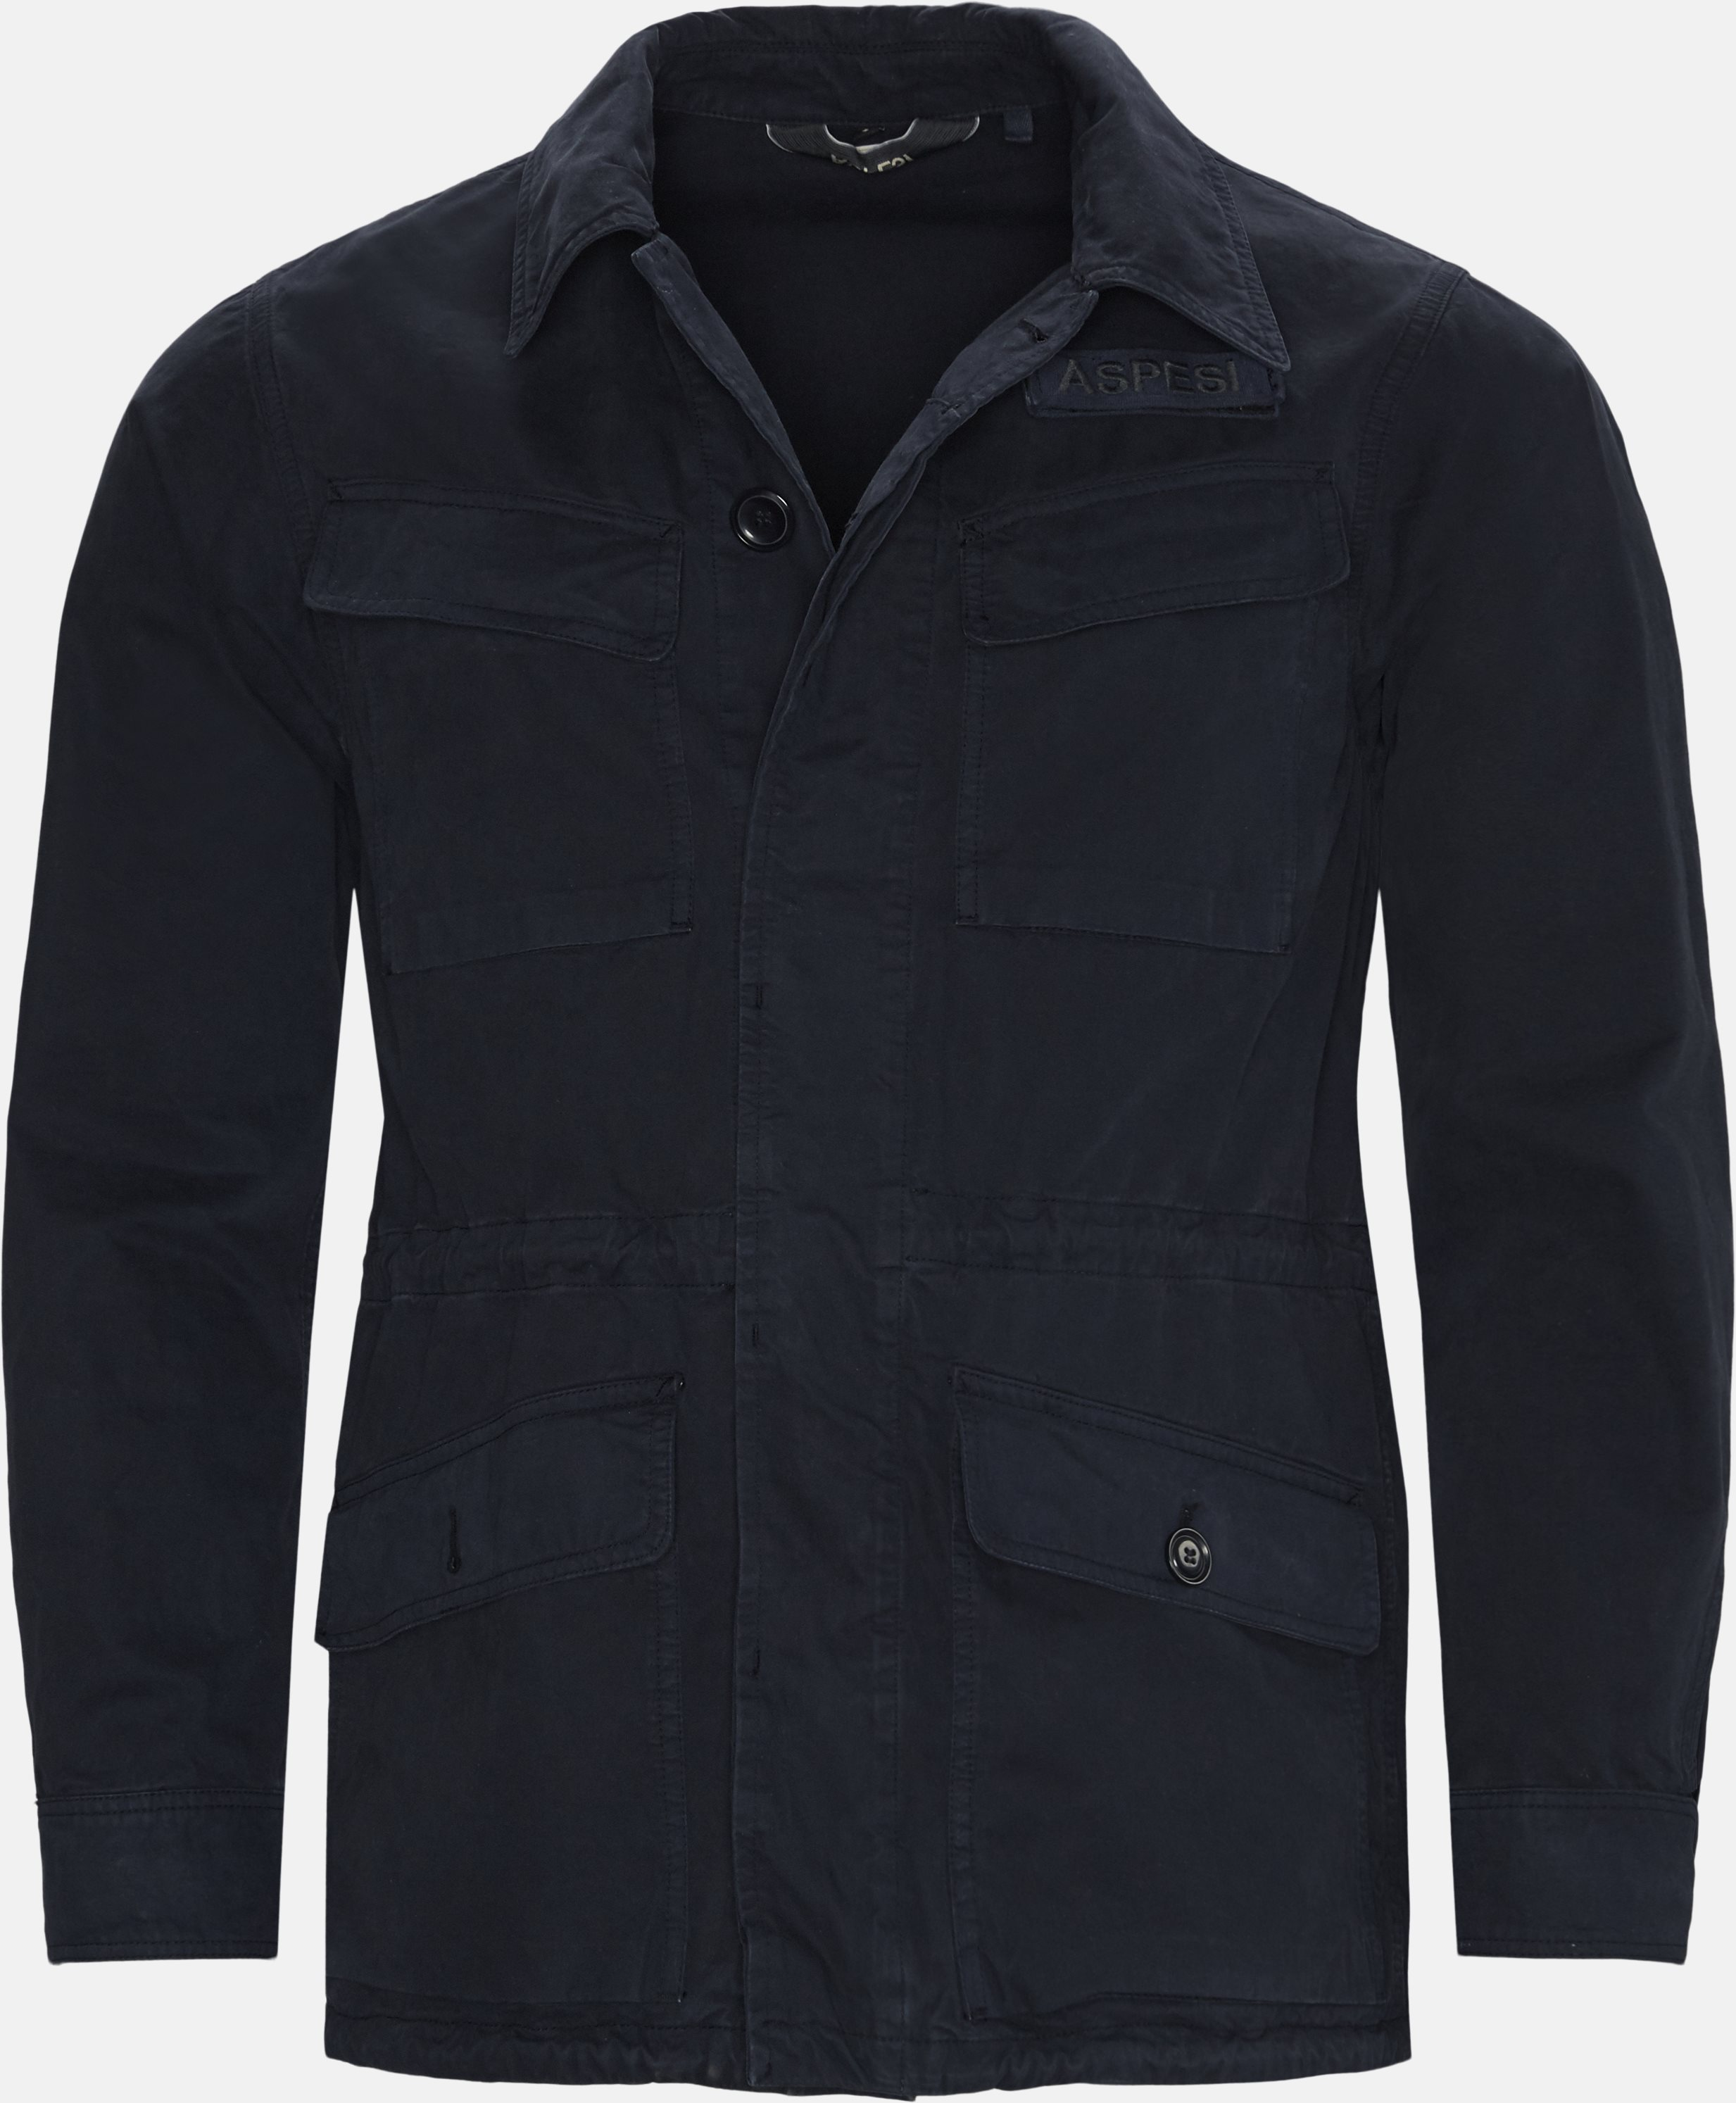 Jackets - Regular fit - Blue